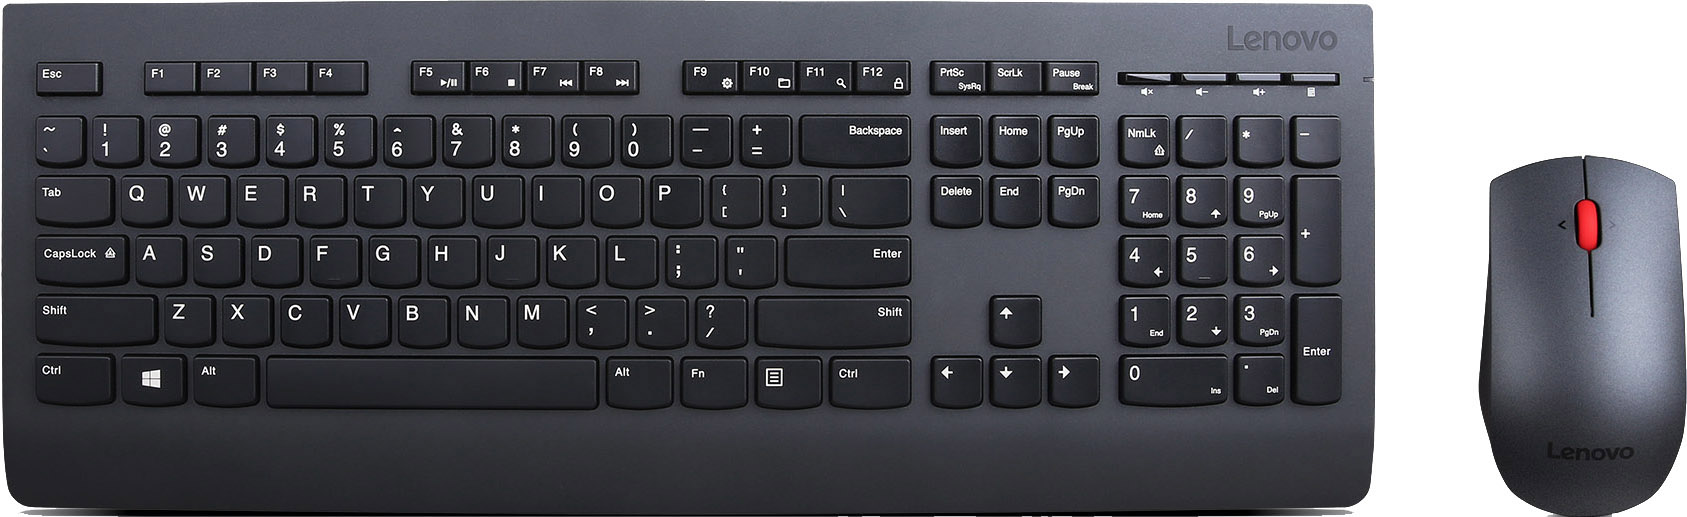 Клавиатура и мышь Lenovo Wireless Keyboard and Mouse Combo 4X30H56821